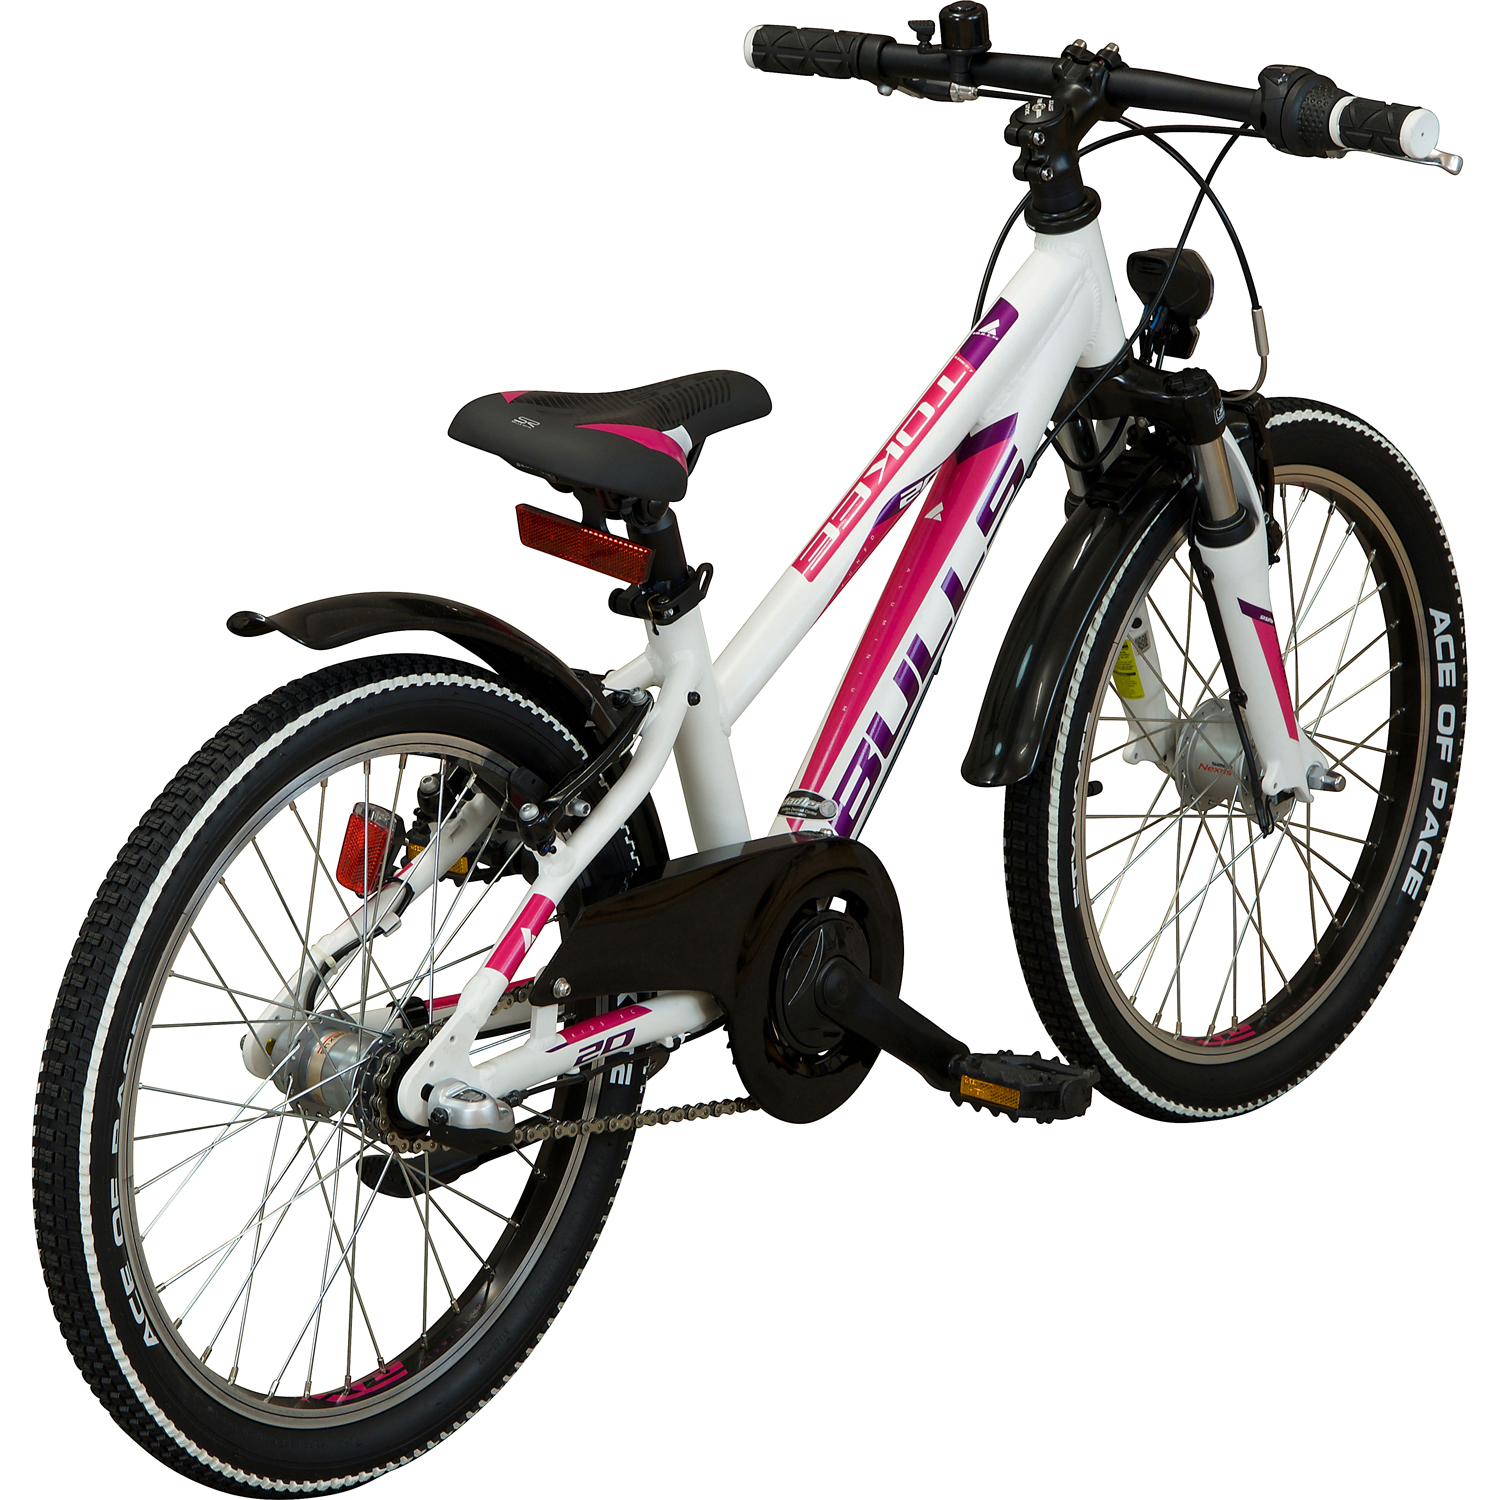 bulls tokee street 20 kinderfahrrad 3 gang online shop zweirad stadler. Black Bedroom Furniture Sets. Home Design Ideas